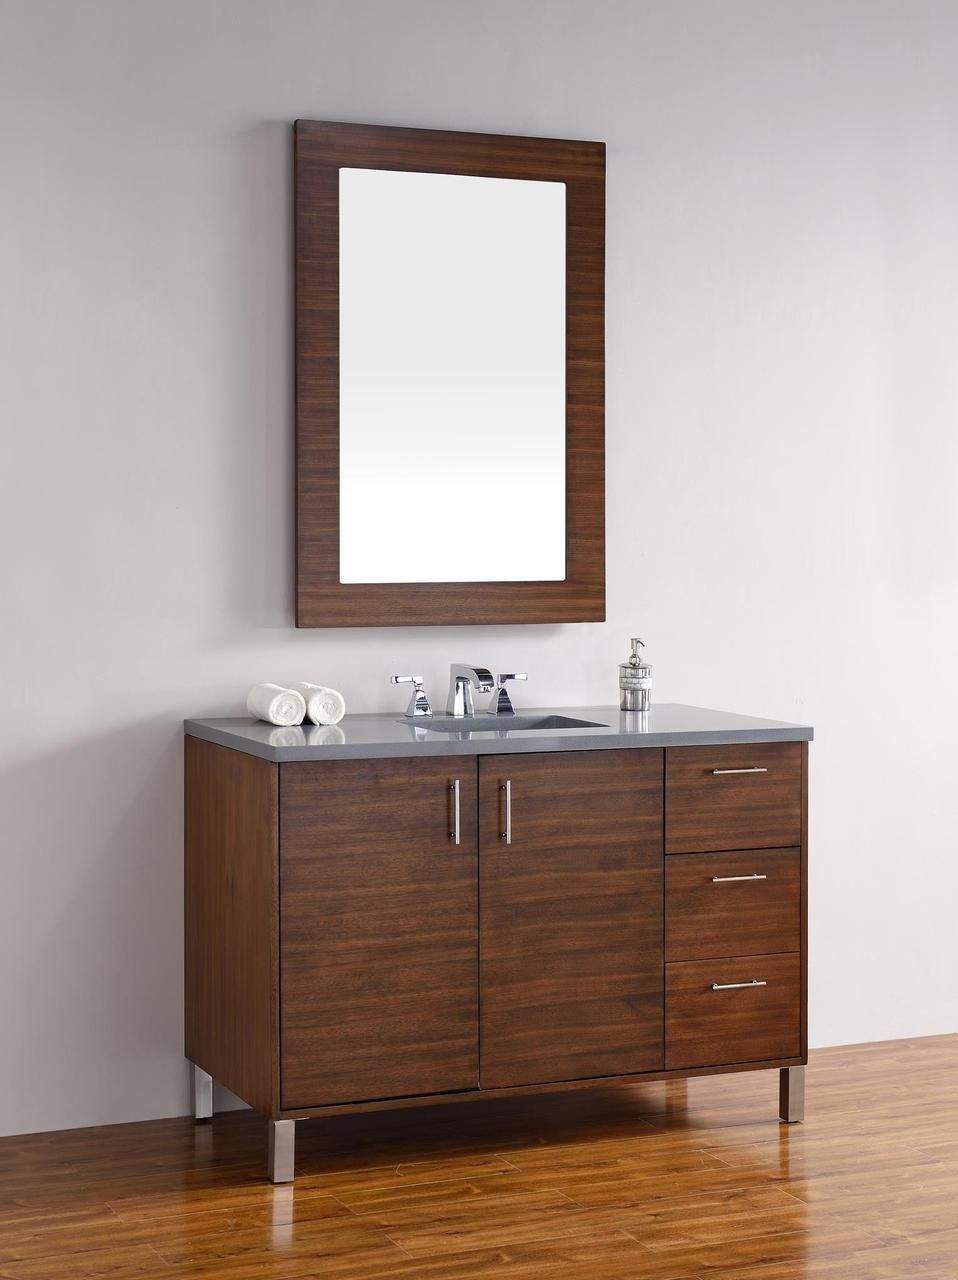 the 48 inch modern bathroom vanity http www listvanities com rh pinterest com White 48 Inch Bathroom Vanities with Tops Modern Bathroom Vanities On Sale